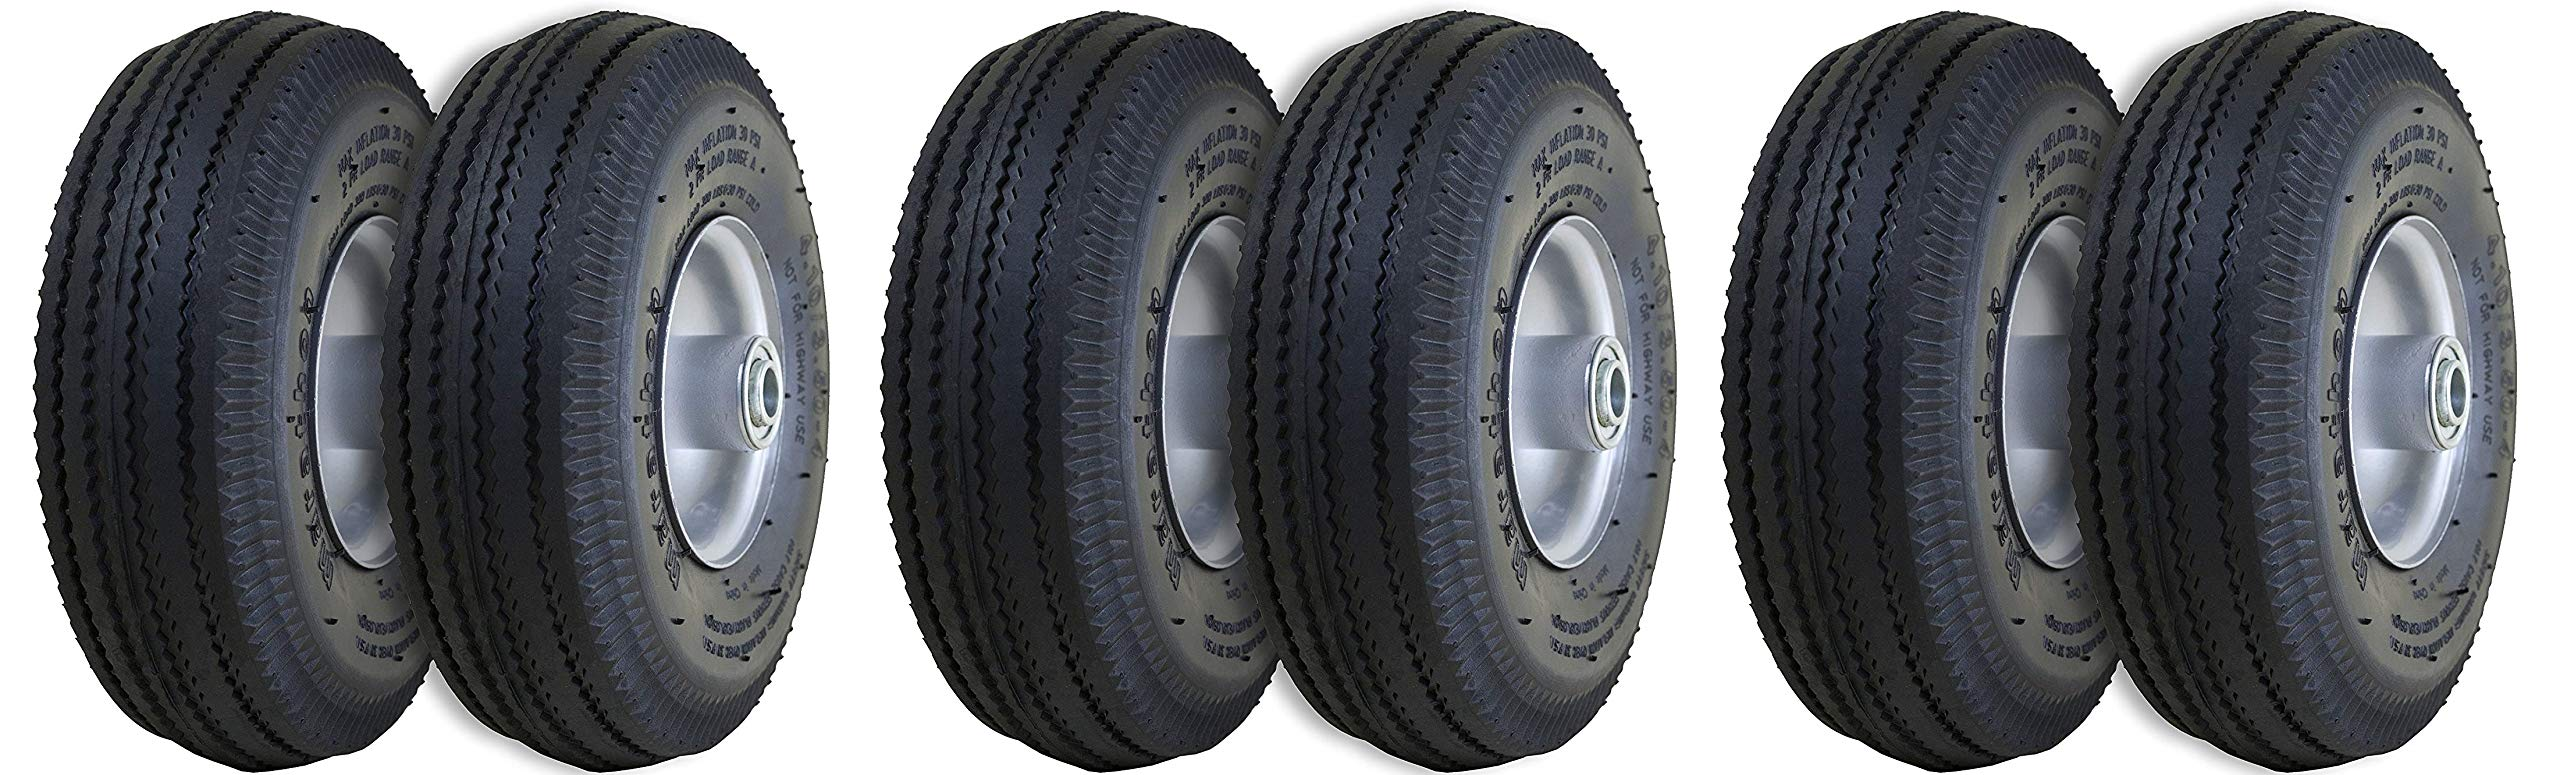 Marathon 4.10/3.50-4 Pneumatic (Air Filled) Hand Truck/All Purpose Utility Tires on Wheels, 2.25 Offset Hub, 5/8 Bearings (3 X Pack of 2)